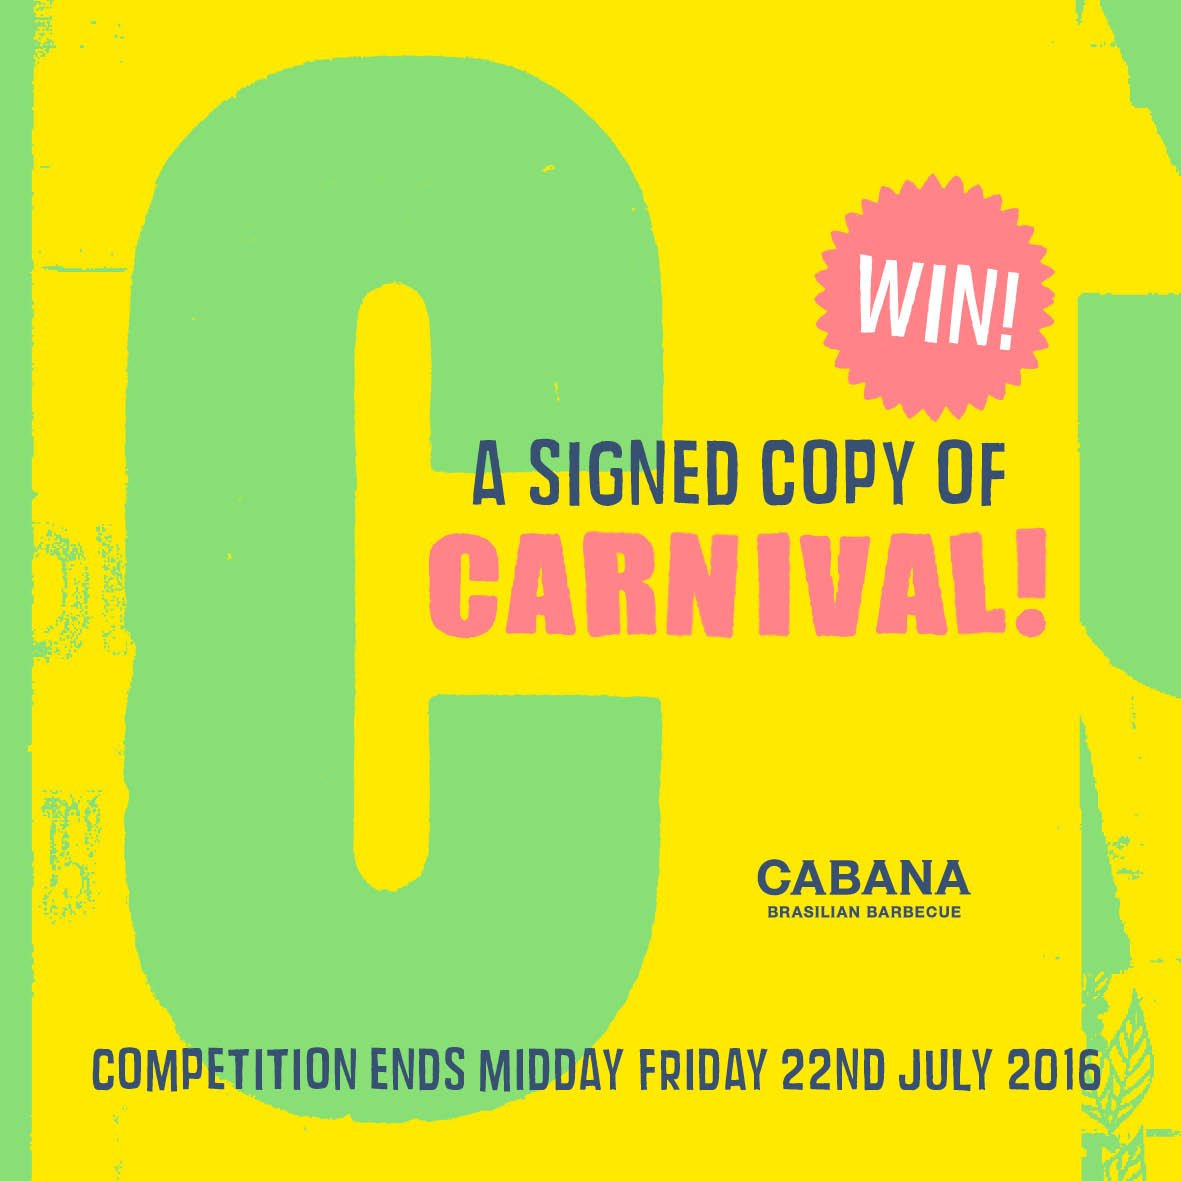 #competition time - celebrate the launch of Carnival! and this #heatwave in style. RT to #win a SIGNED copy! https://t.co/40c2gpWWuK